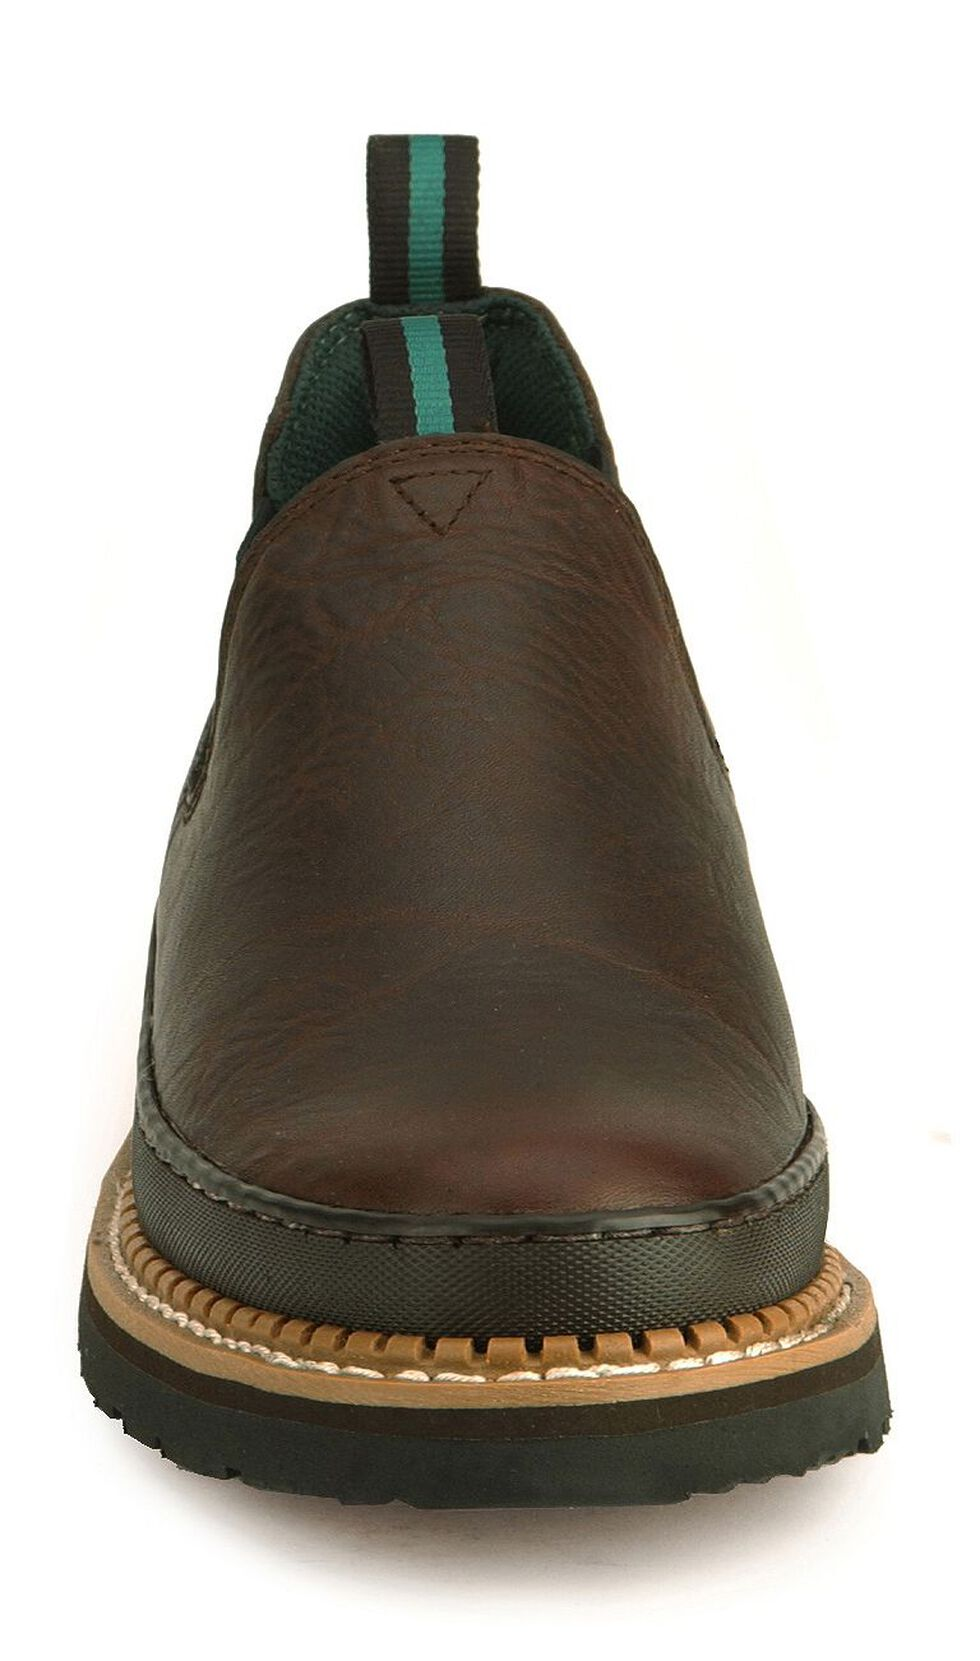 Georgia Giant Romeo Slip-On Work Shoes, Dark Brown, hi-res